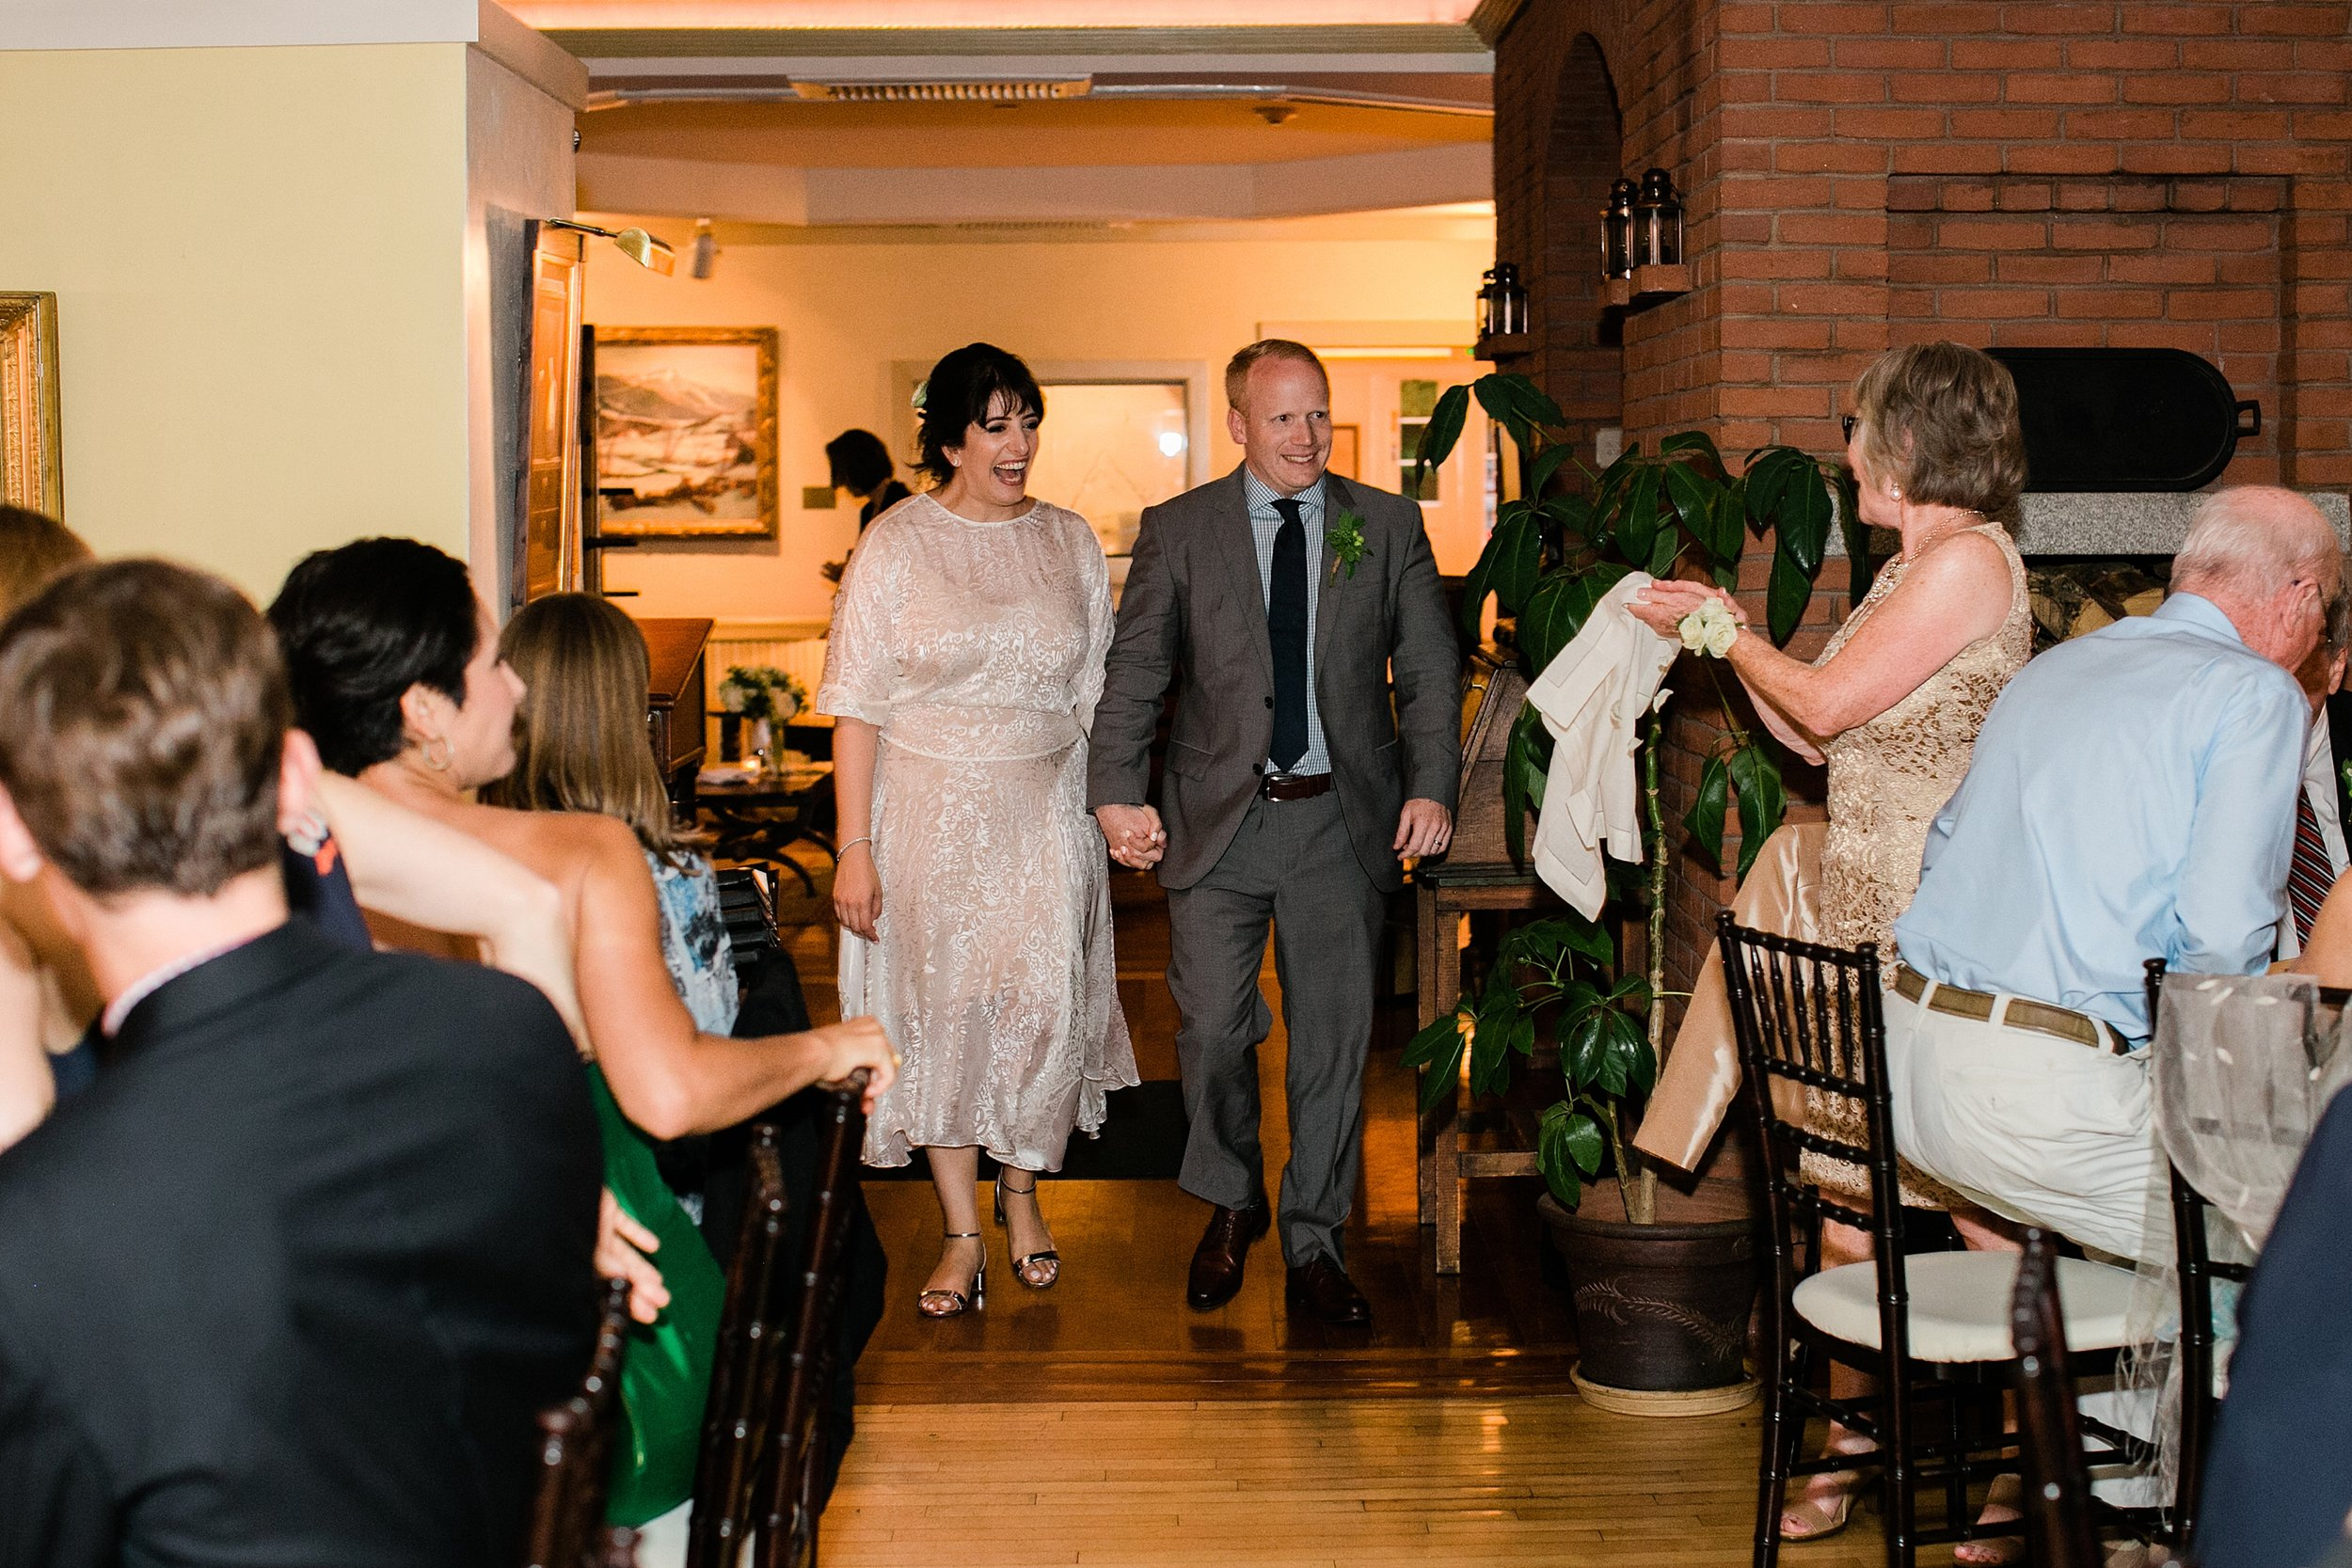 055-los-angeles-wedding-photography-todd-danforth-vermont.jpg